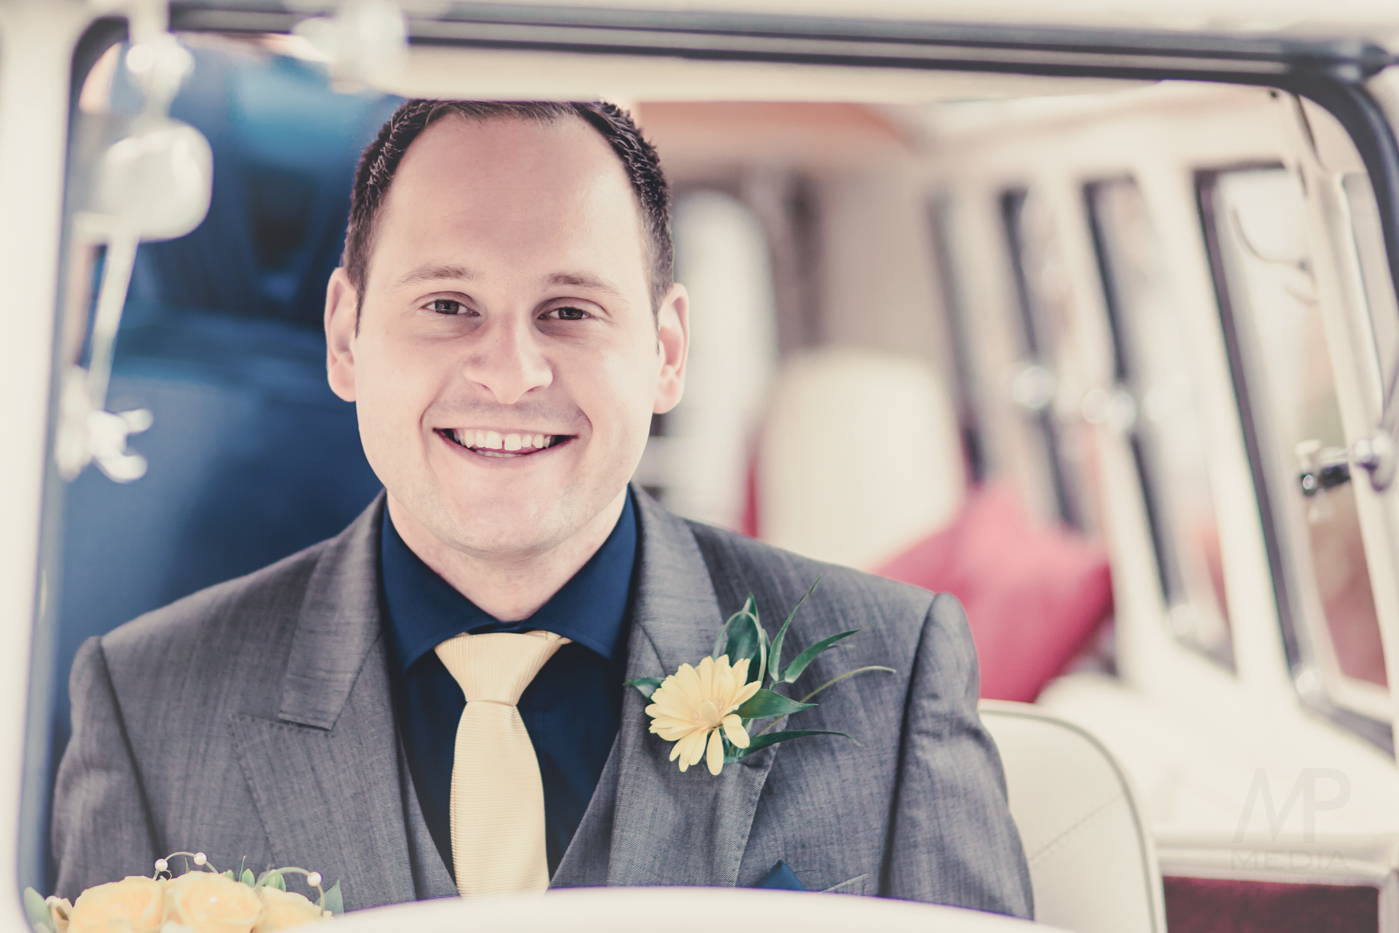 310 - Chris and Natalies Wedding (MAIN) - DO NOT SHARE THIS IMAGES ONLINE -2.JPG